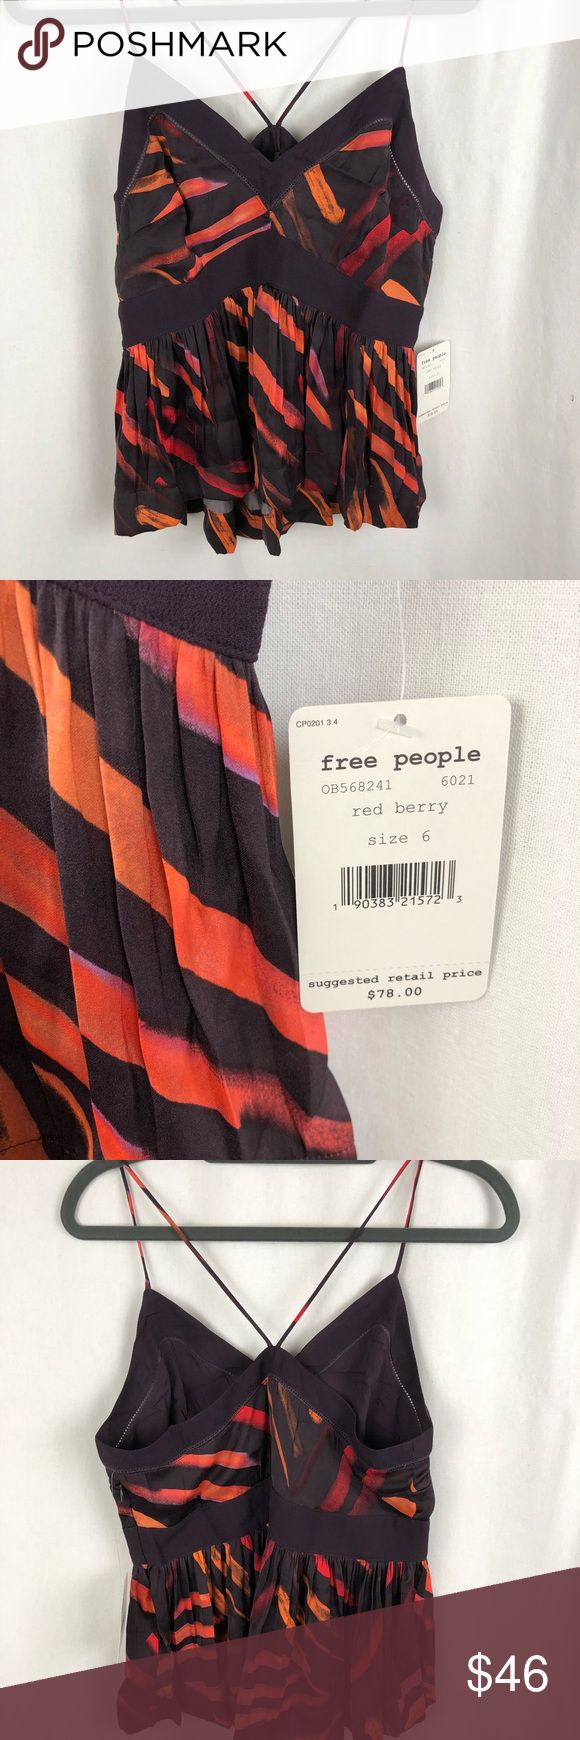 Free people brand new with tags red berry camisole Size 6 smoke free/pet friendly home. Free People Tops Camisoles